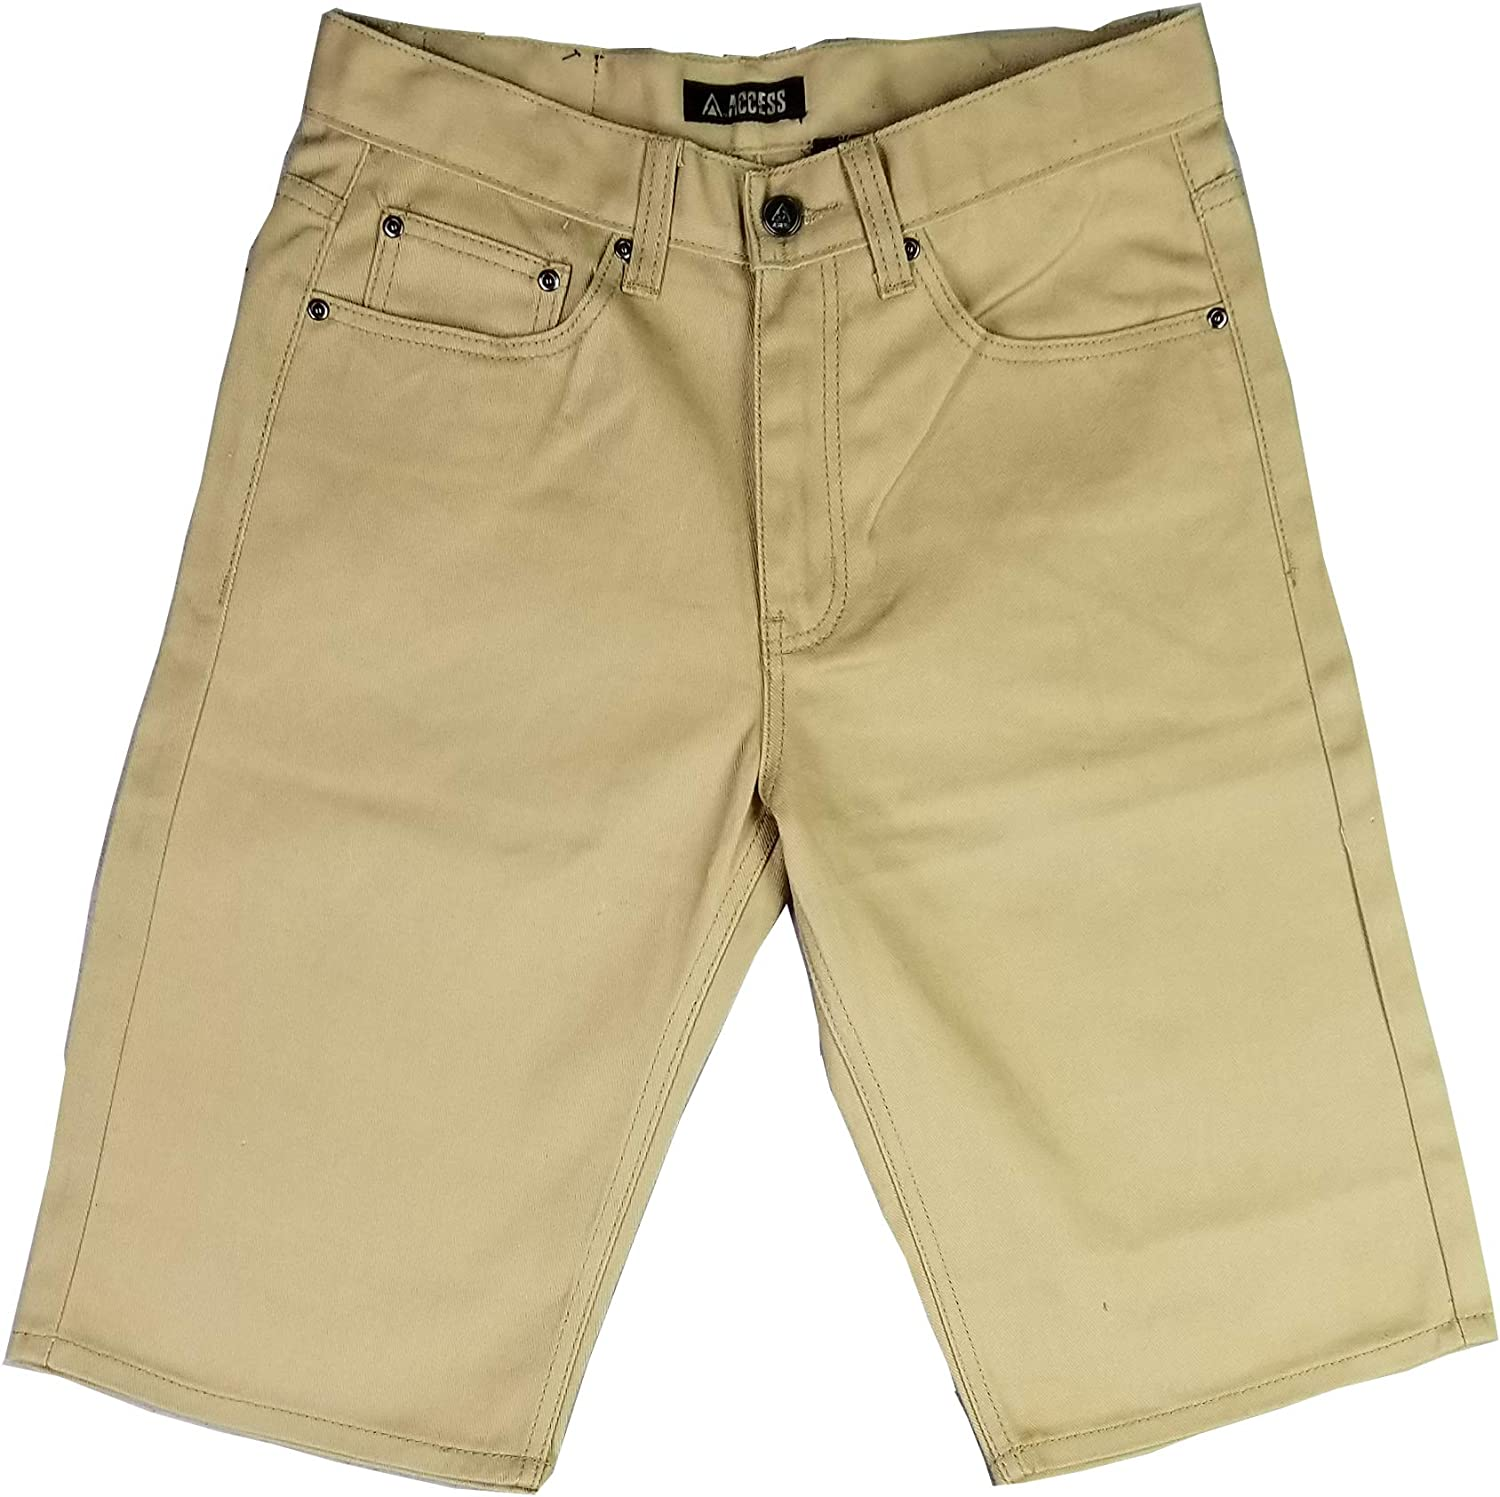 Access Solid Color Jeans Twill Shorts